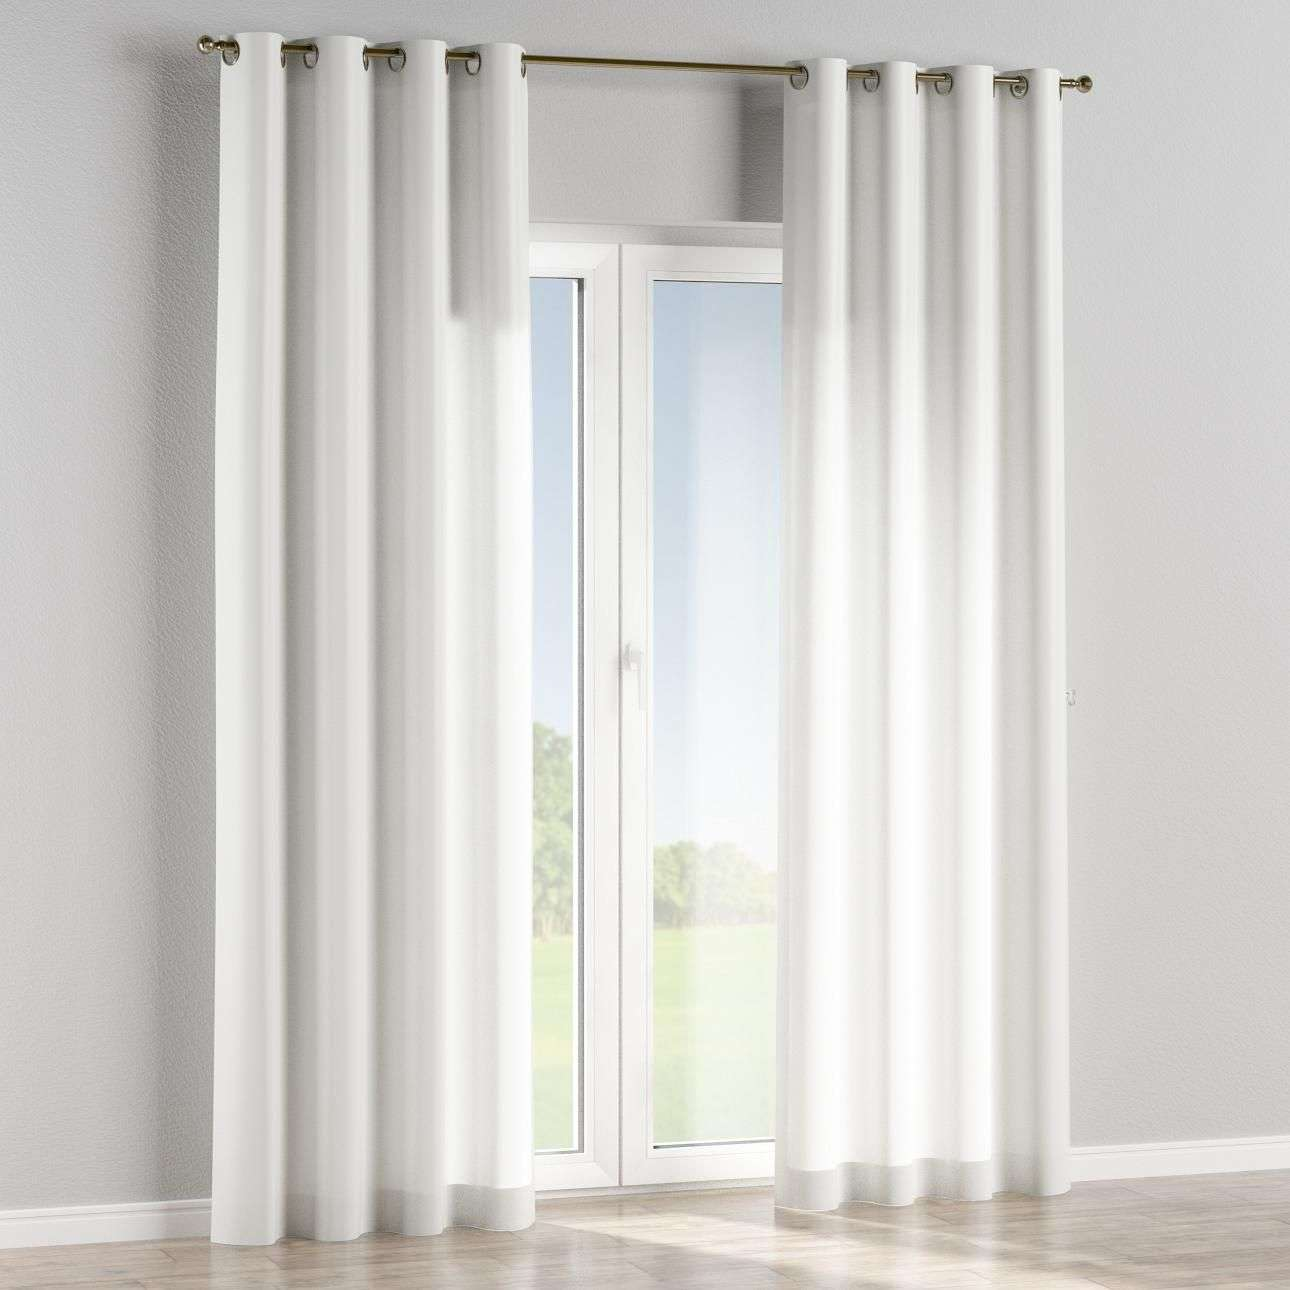 Eyelet lined curtains in collection Londres, fabric: 122-03